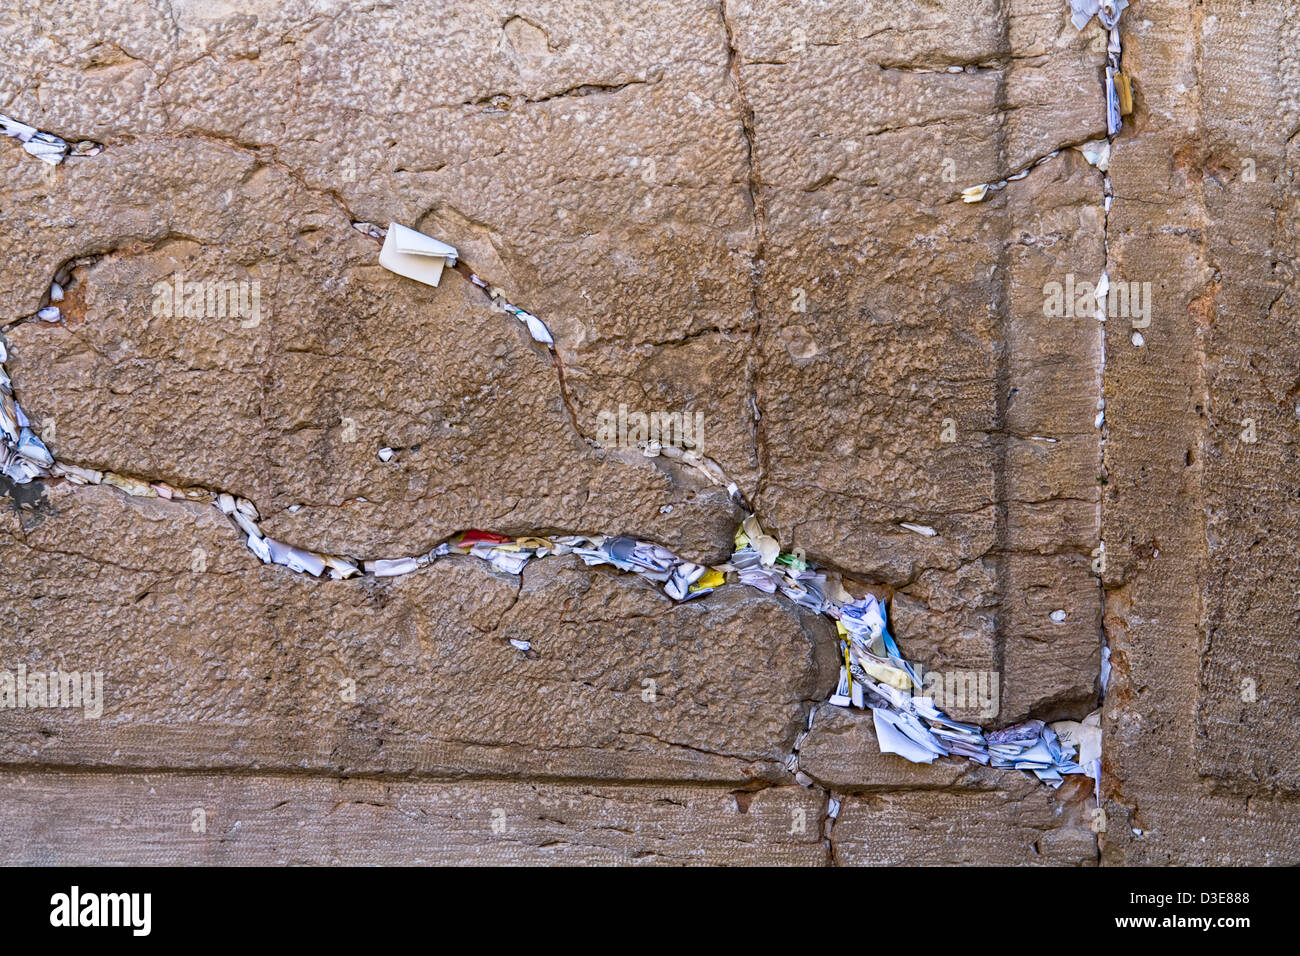 Hundreds of prayers crammed in the cracks of the Western Wall that only God knows - Stock Image